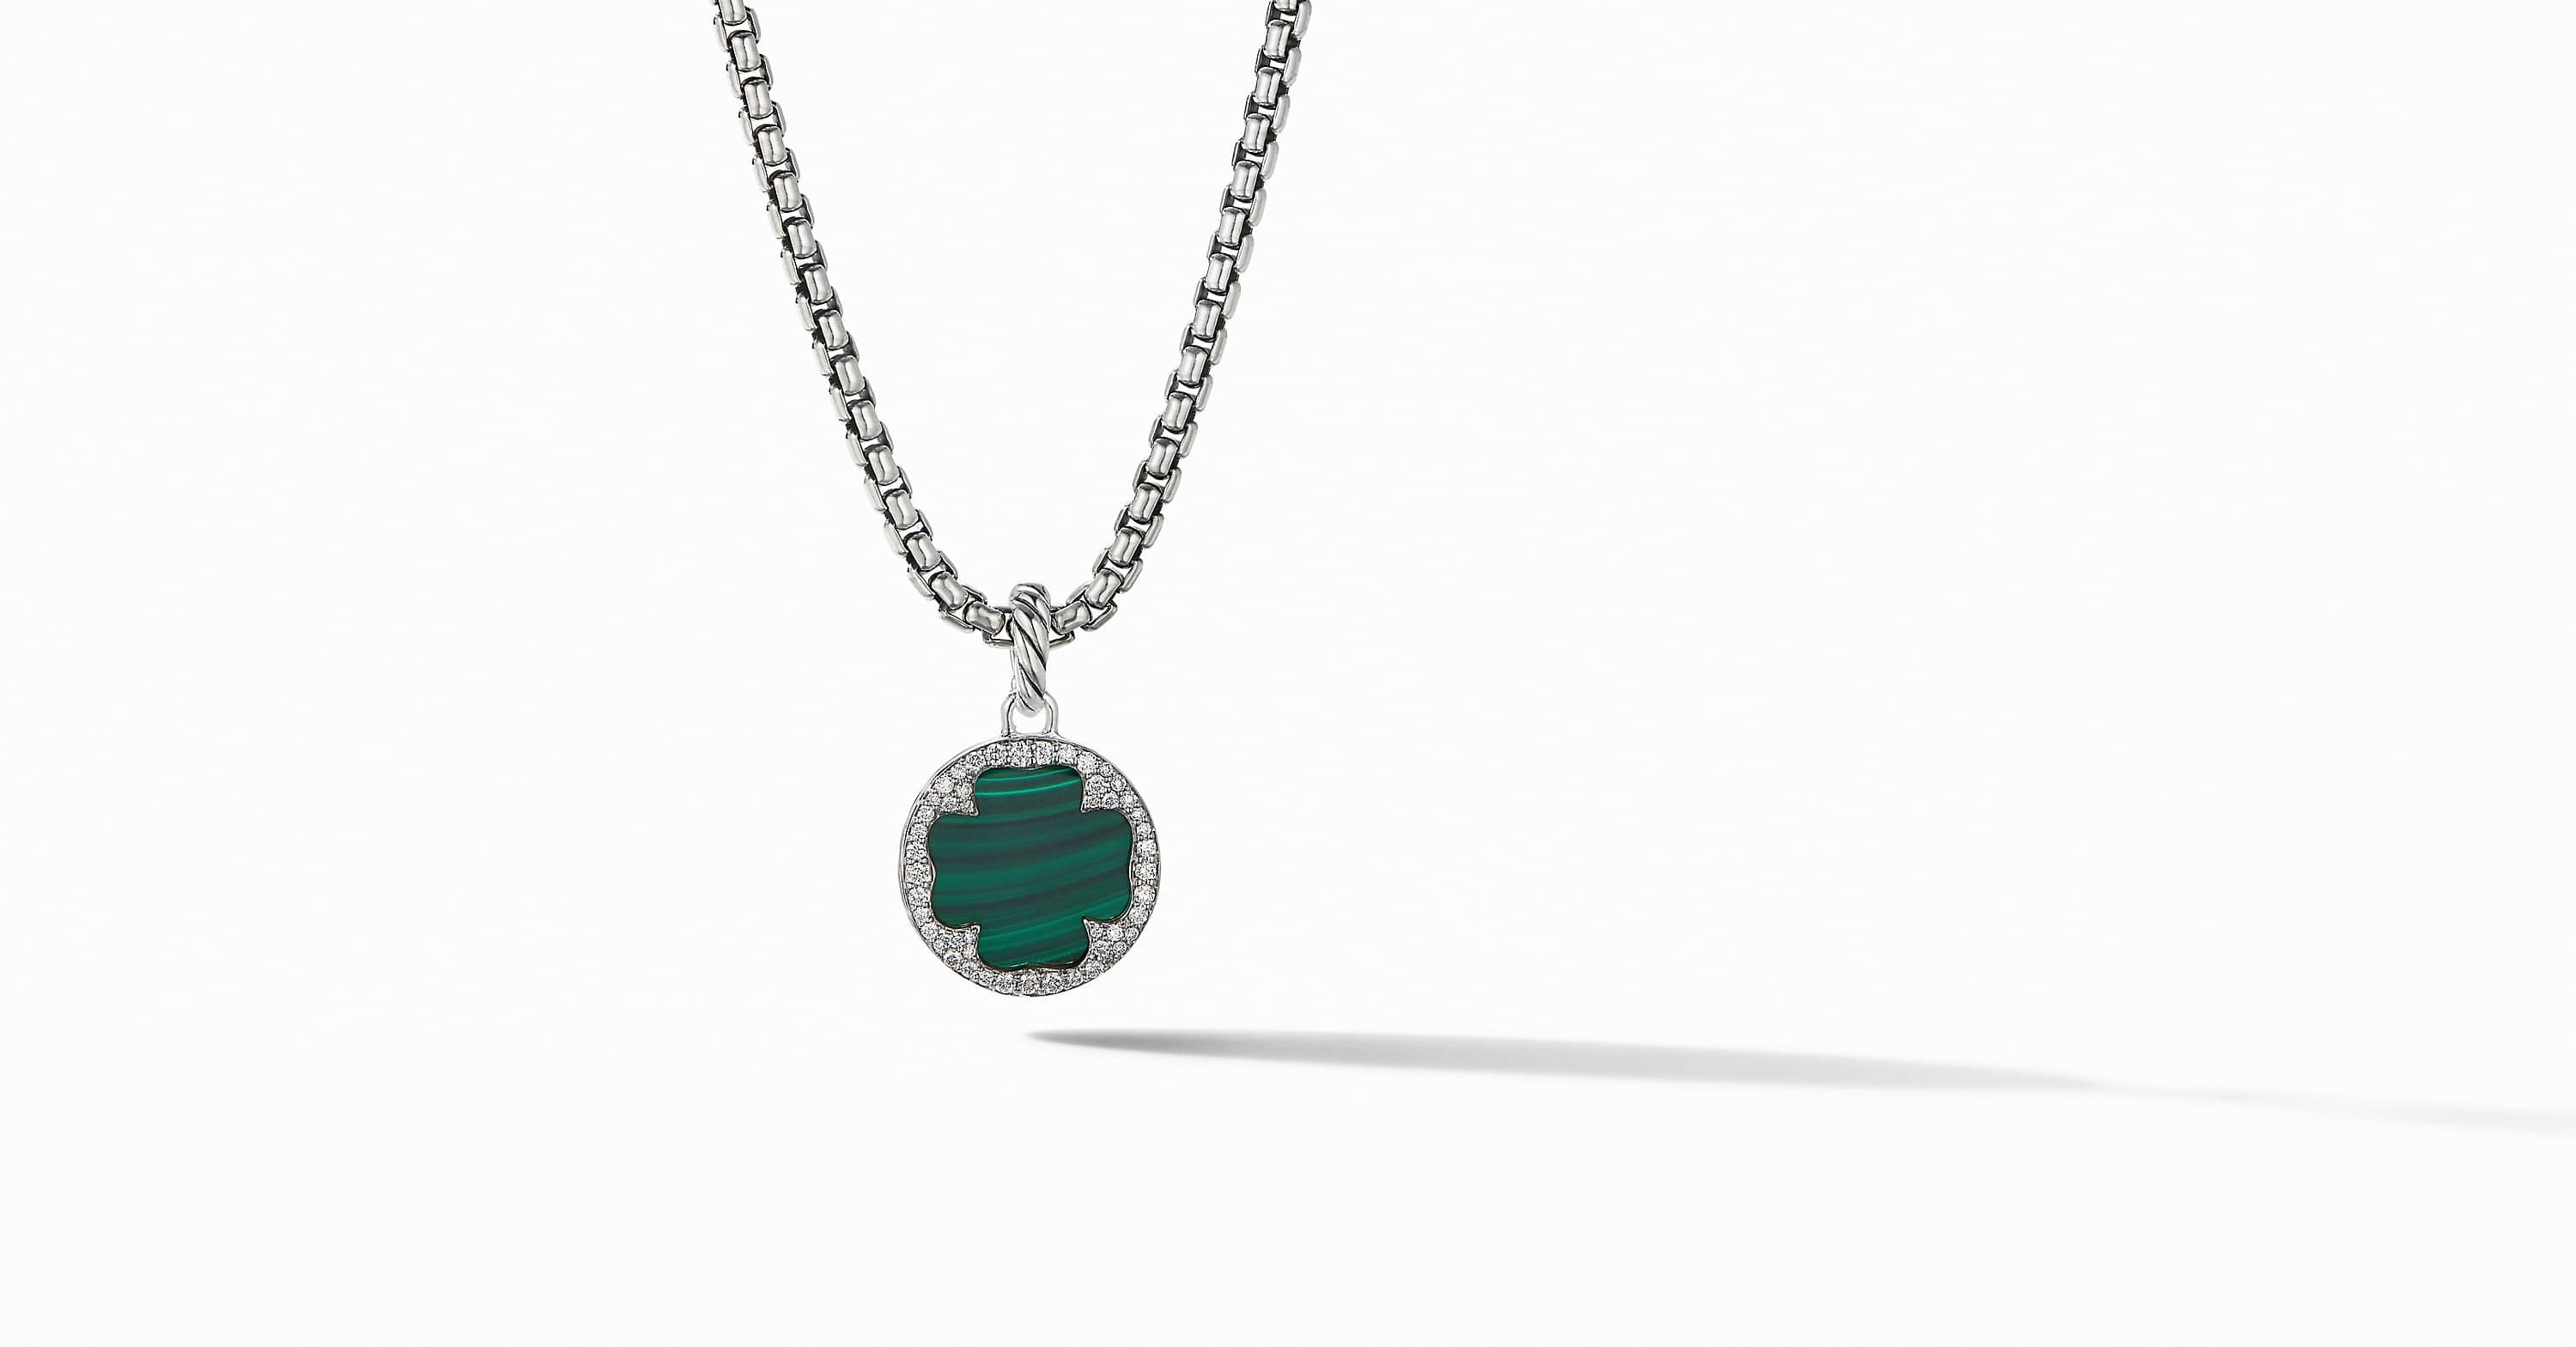 DY Elements Clover Disc Pendant with Diamonds, 15mm